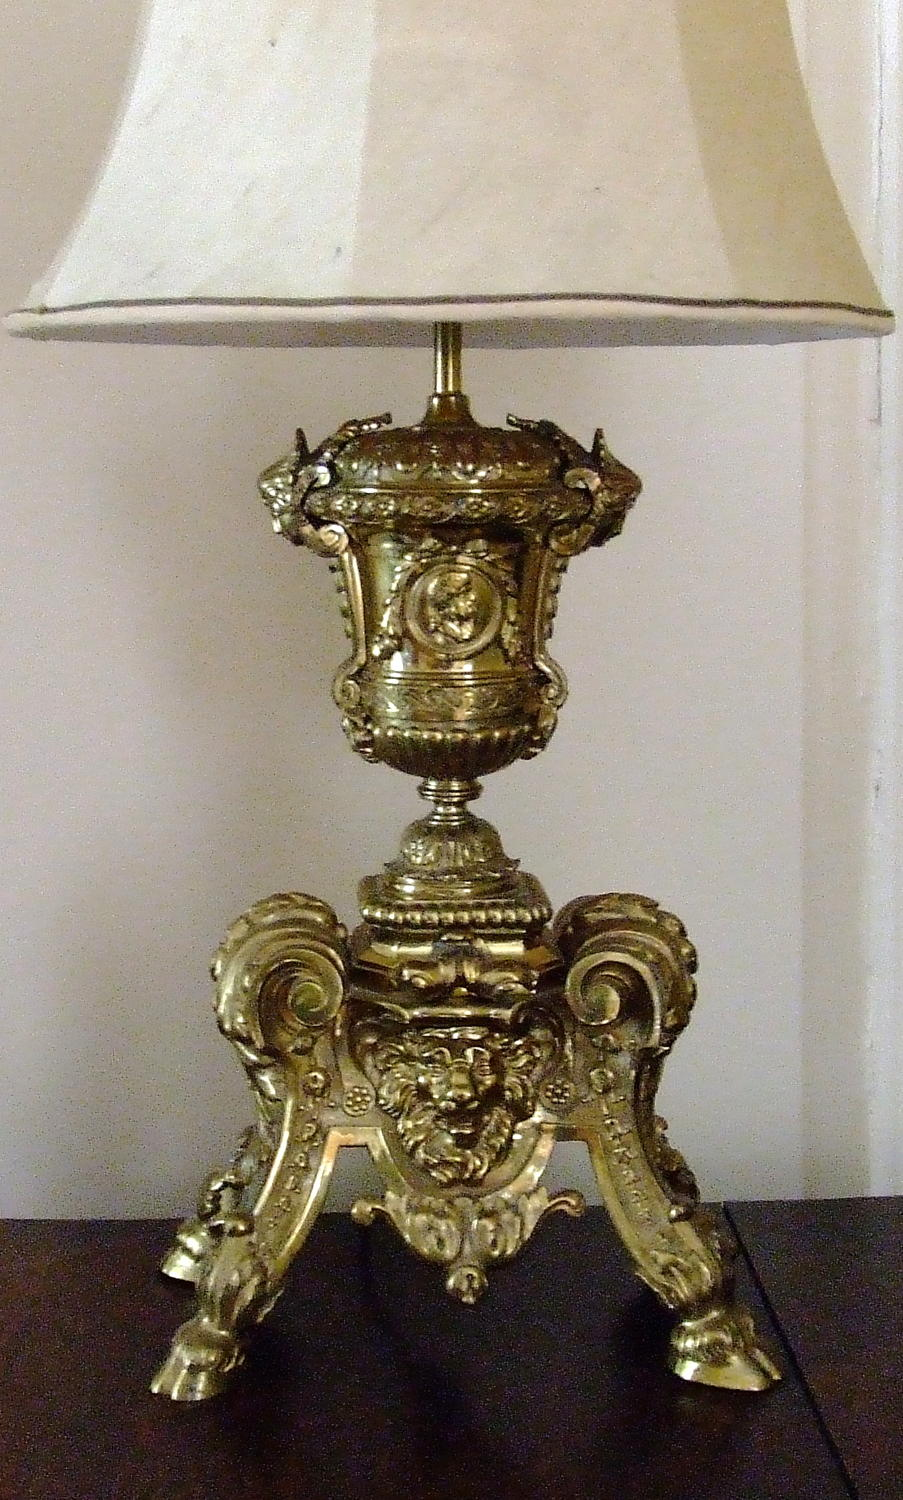 An Antique French Ormolu Bronze Table Lamp